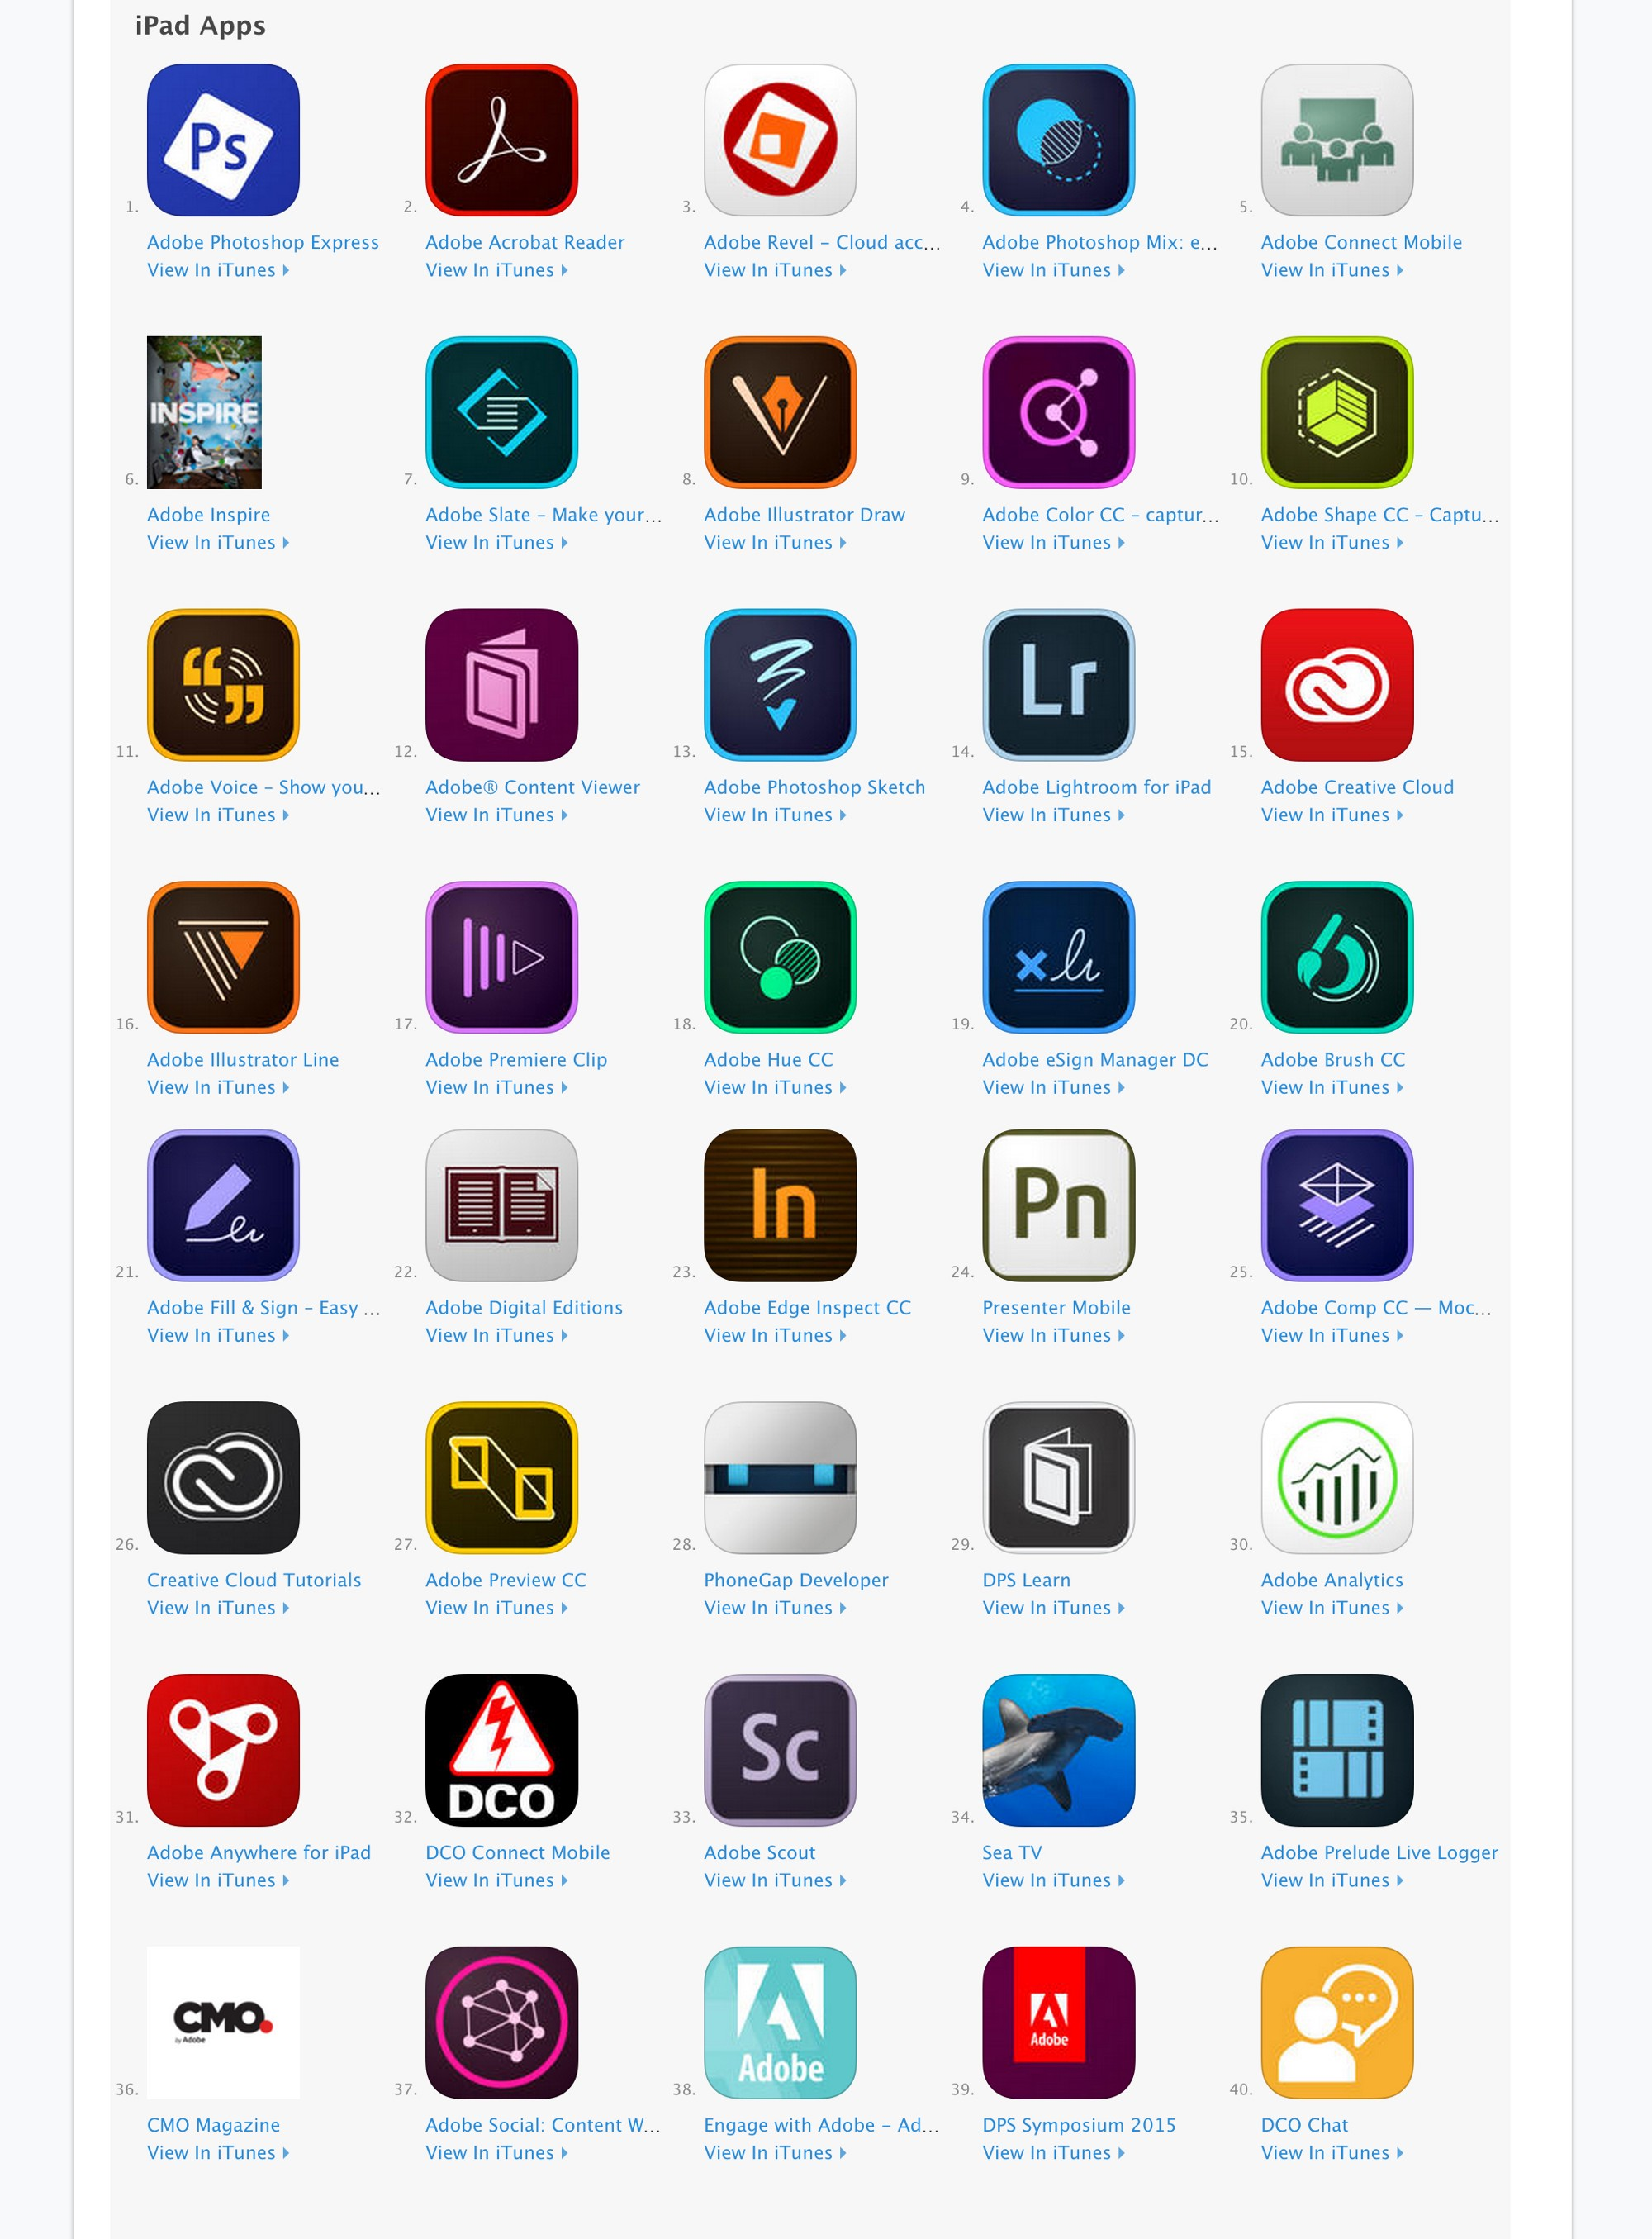 Thank you for everything, Adobe